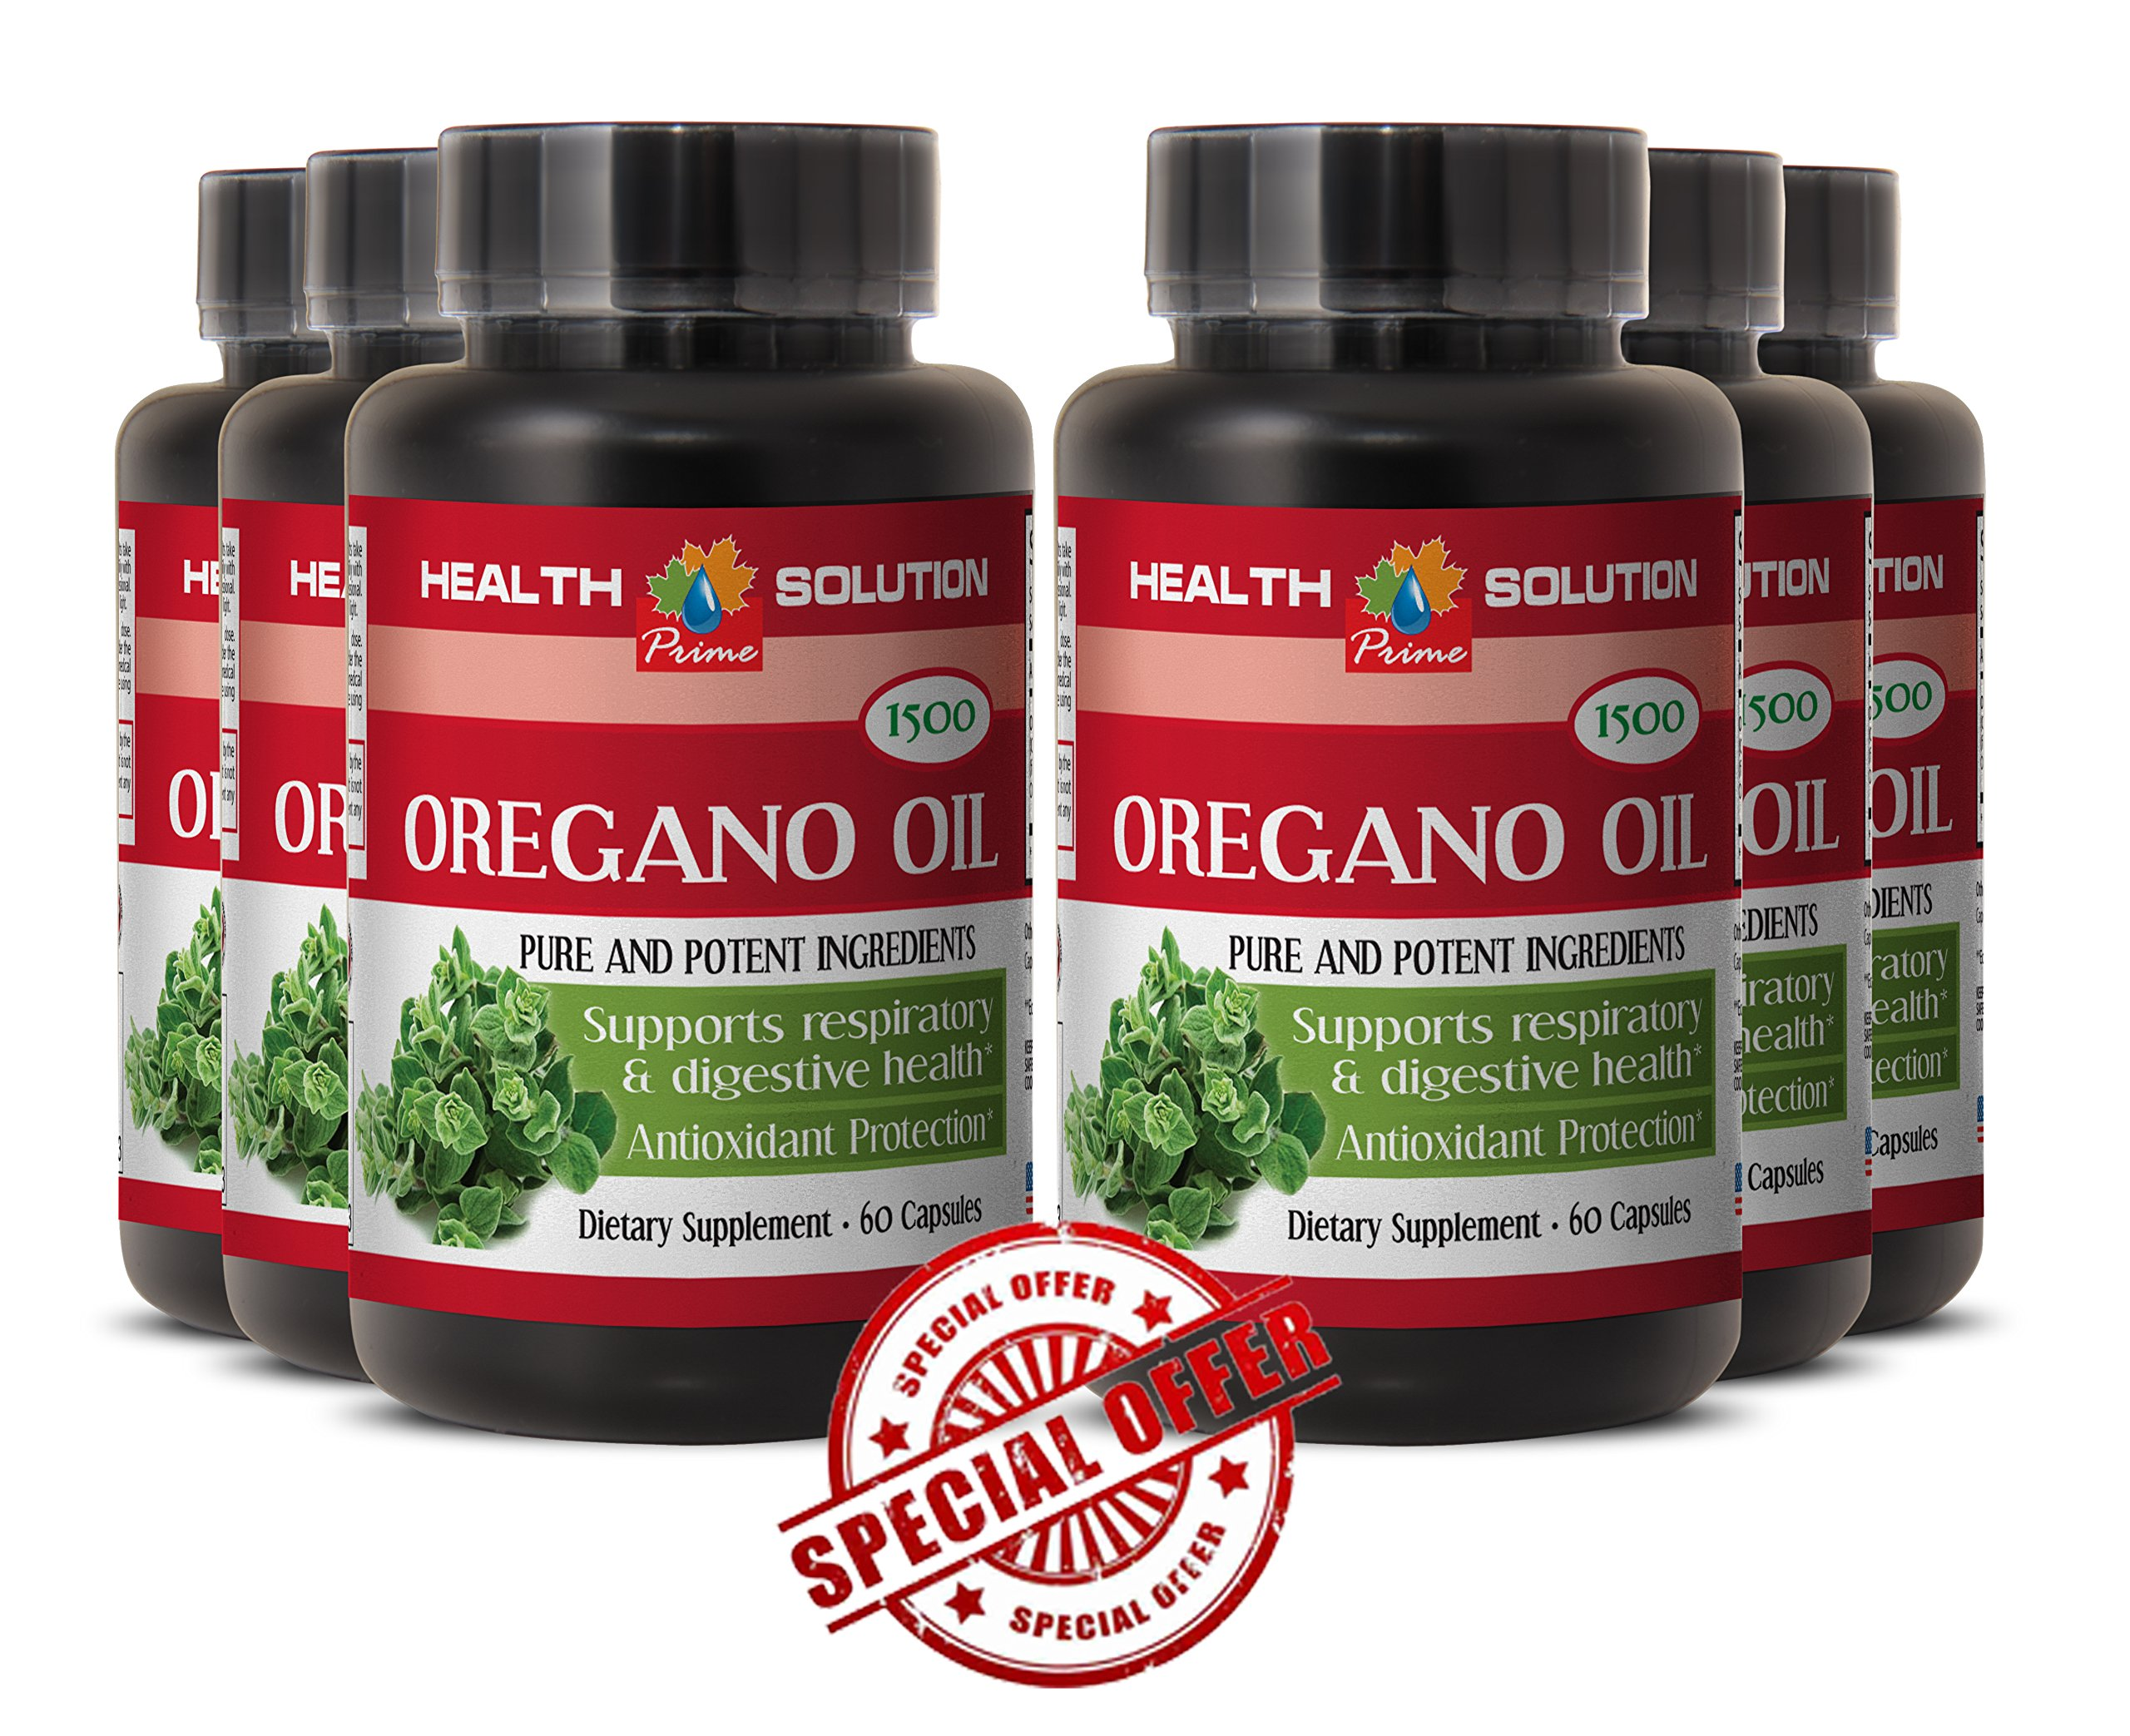 Weigh loss natural aid - PURE OIL OF OREGANO EXTRACT 1500 Mg - Antioxidant supplement Oregano oil extract - 6 Bottles 360 Capsules